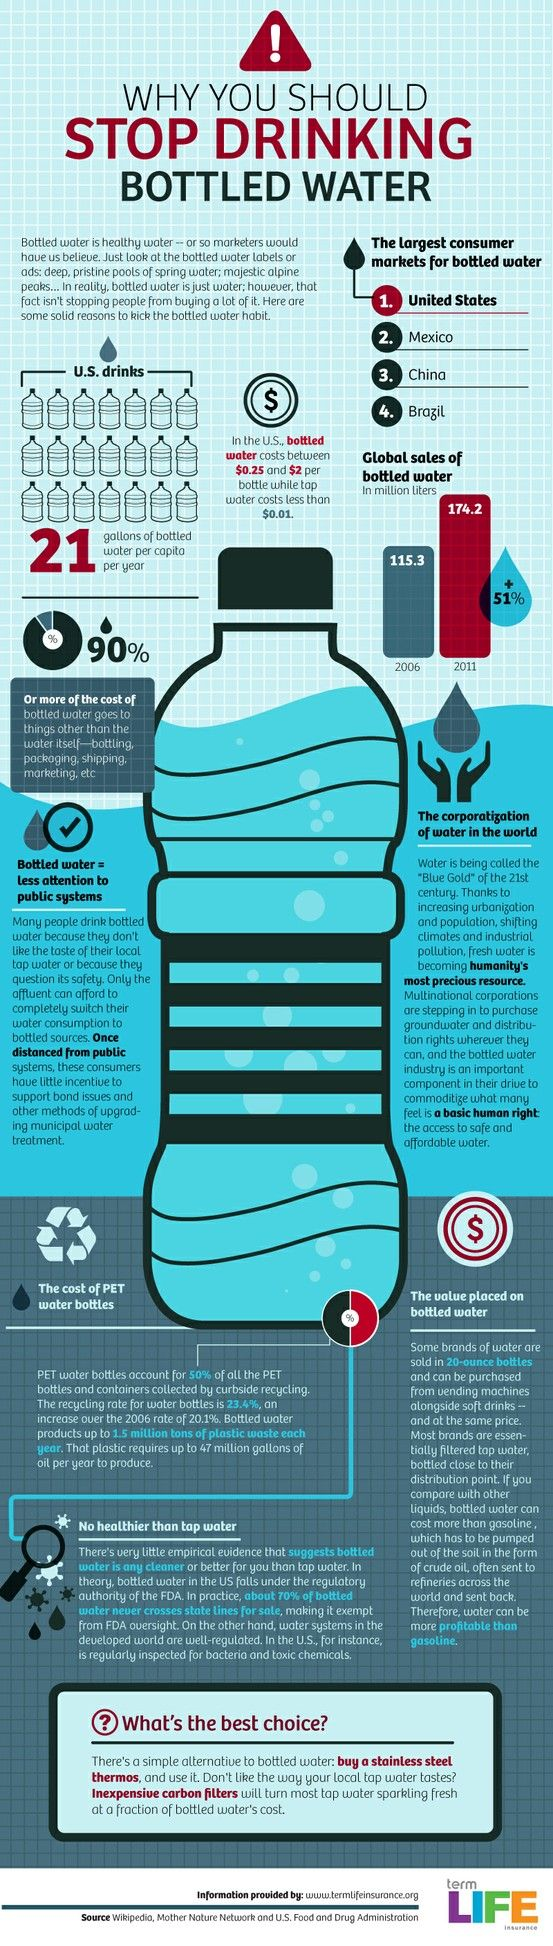 Why you should stop drinking bottled water.